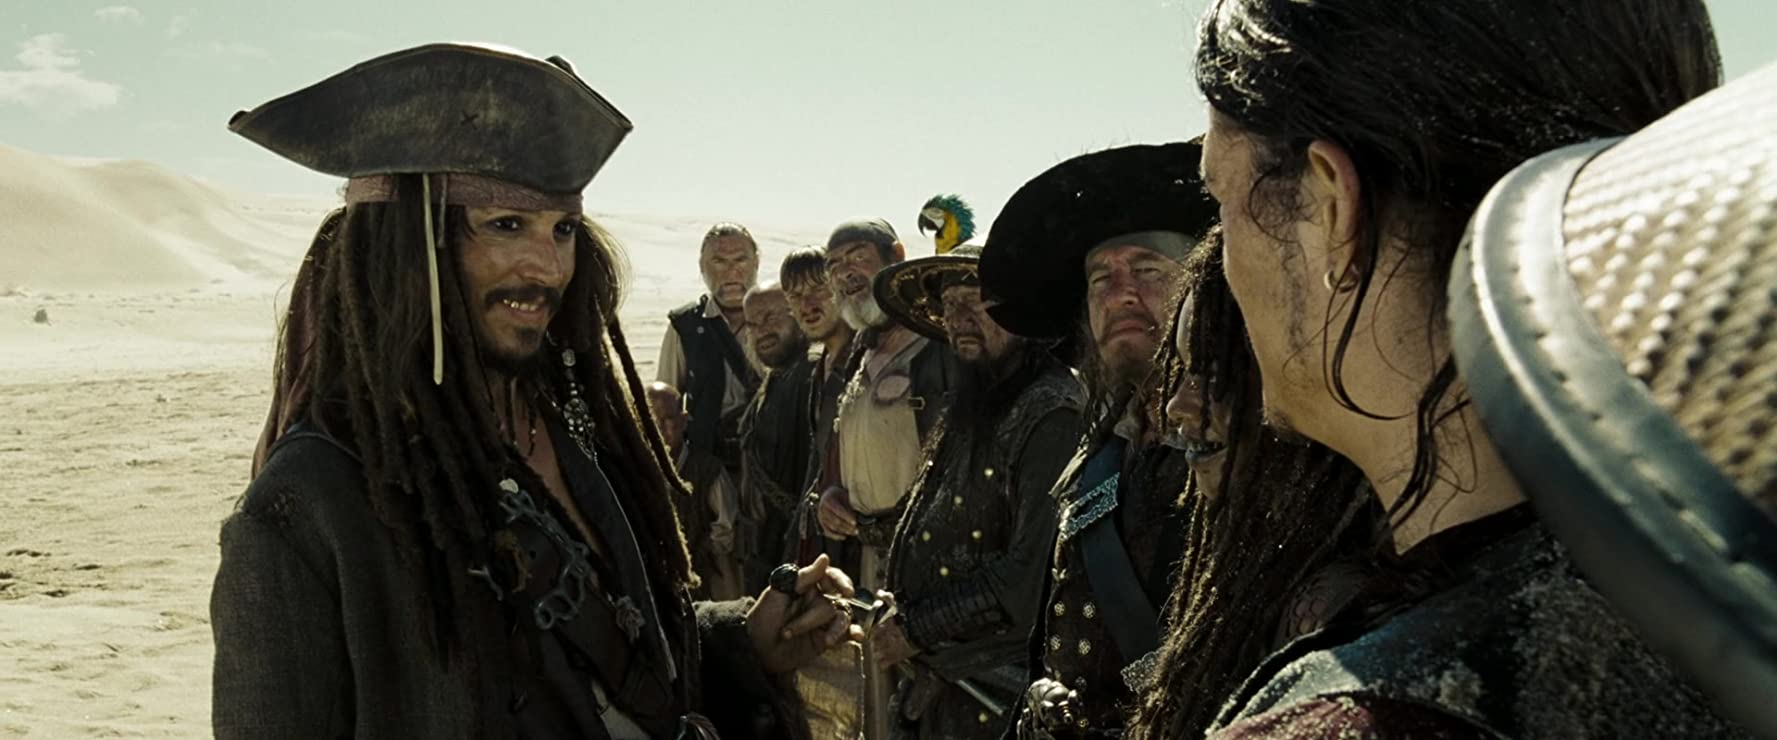 Pirates of the Caribbean: At World's End (2007) | Disney